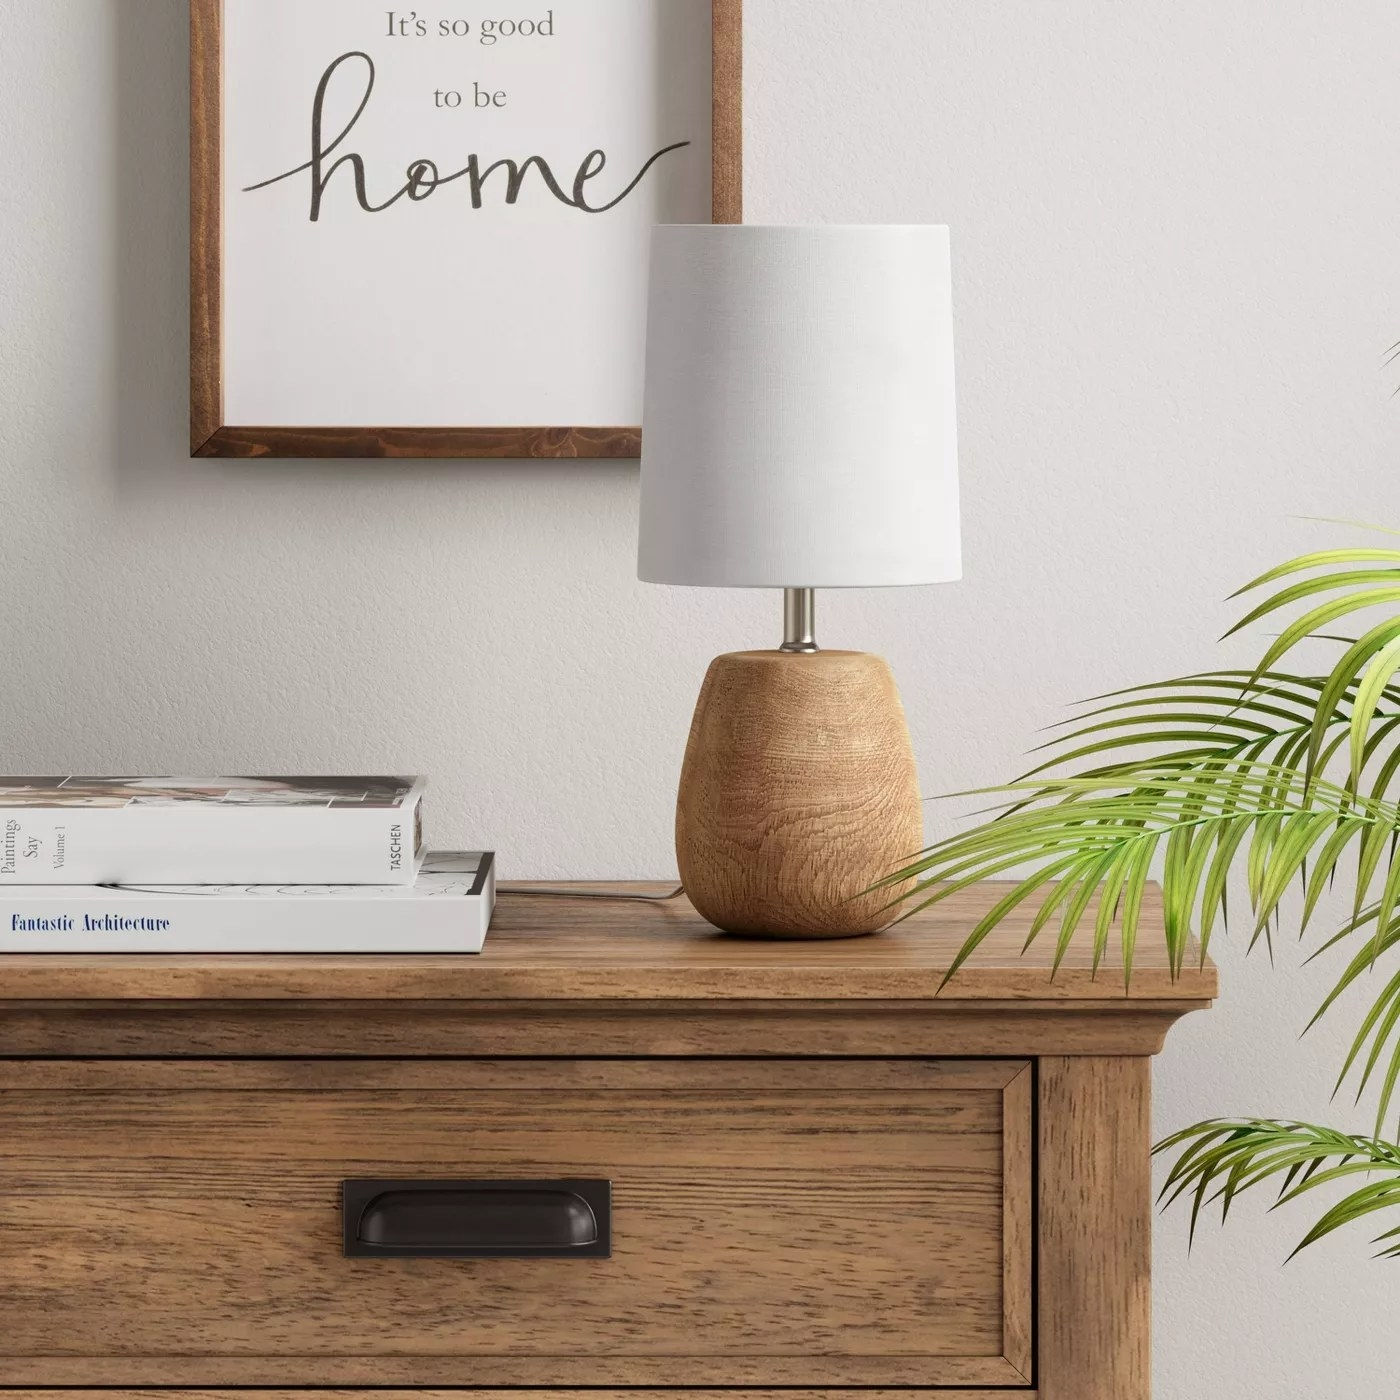 The wooden lamp with a white circular shade on a table